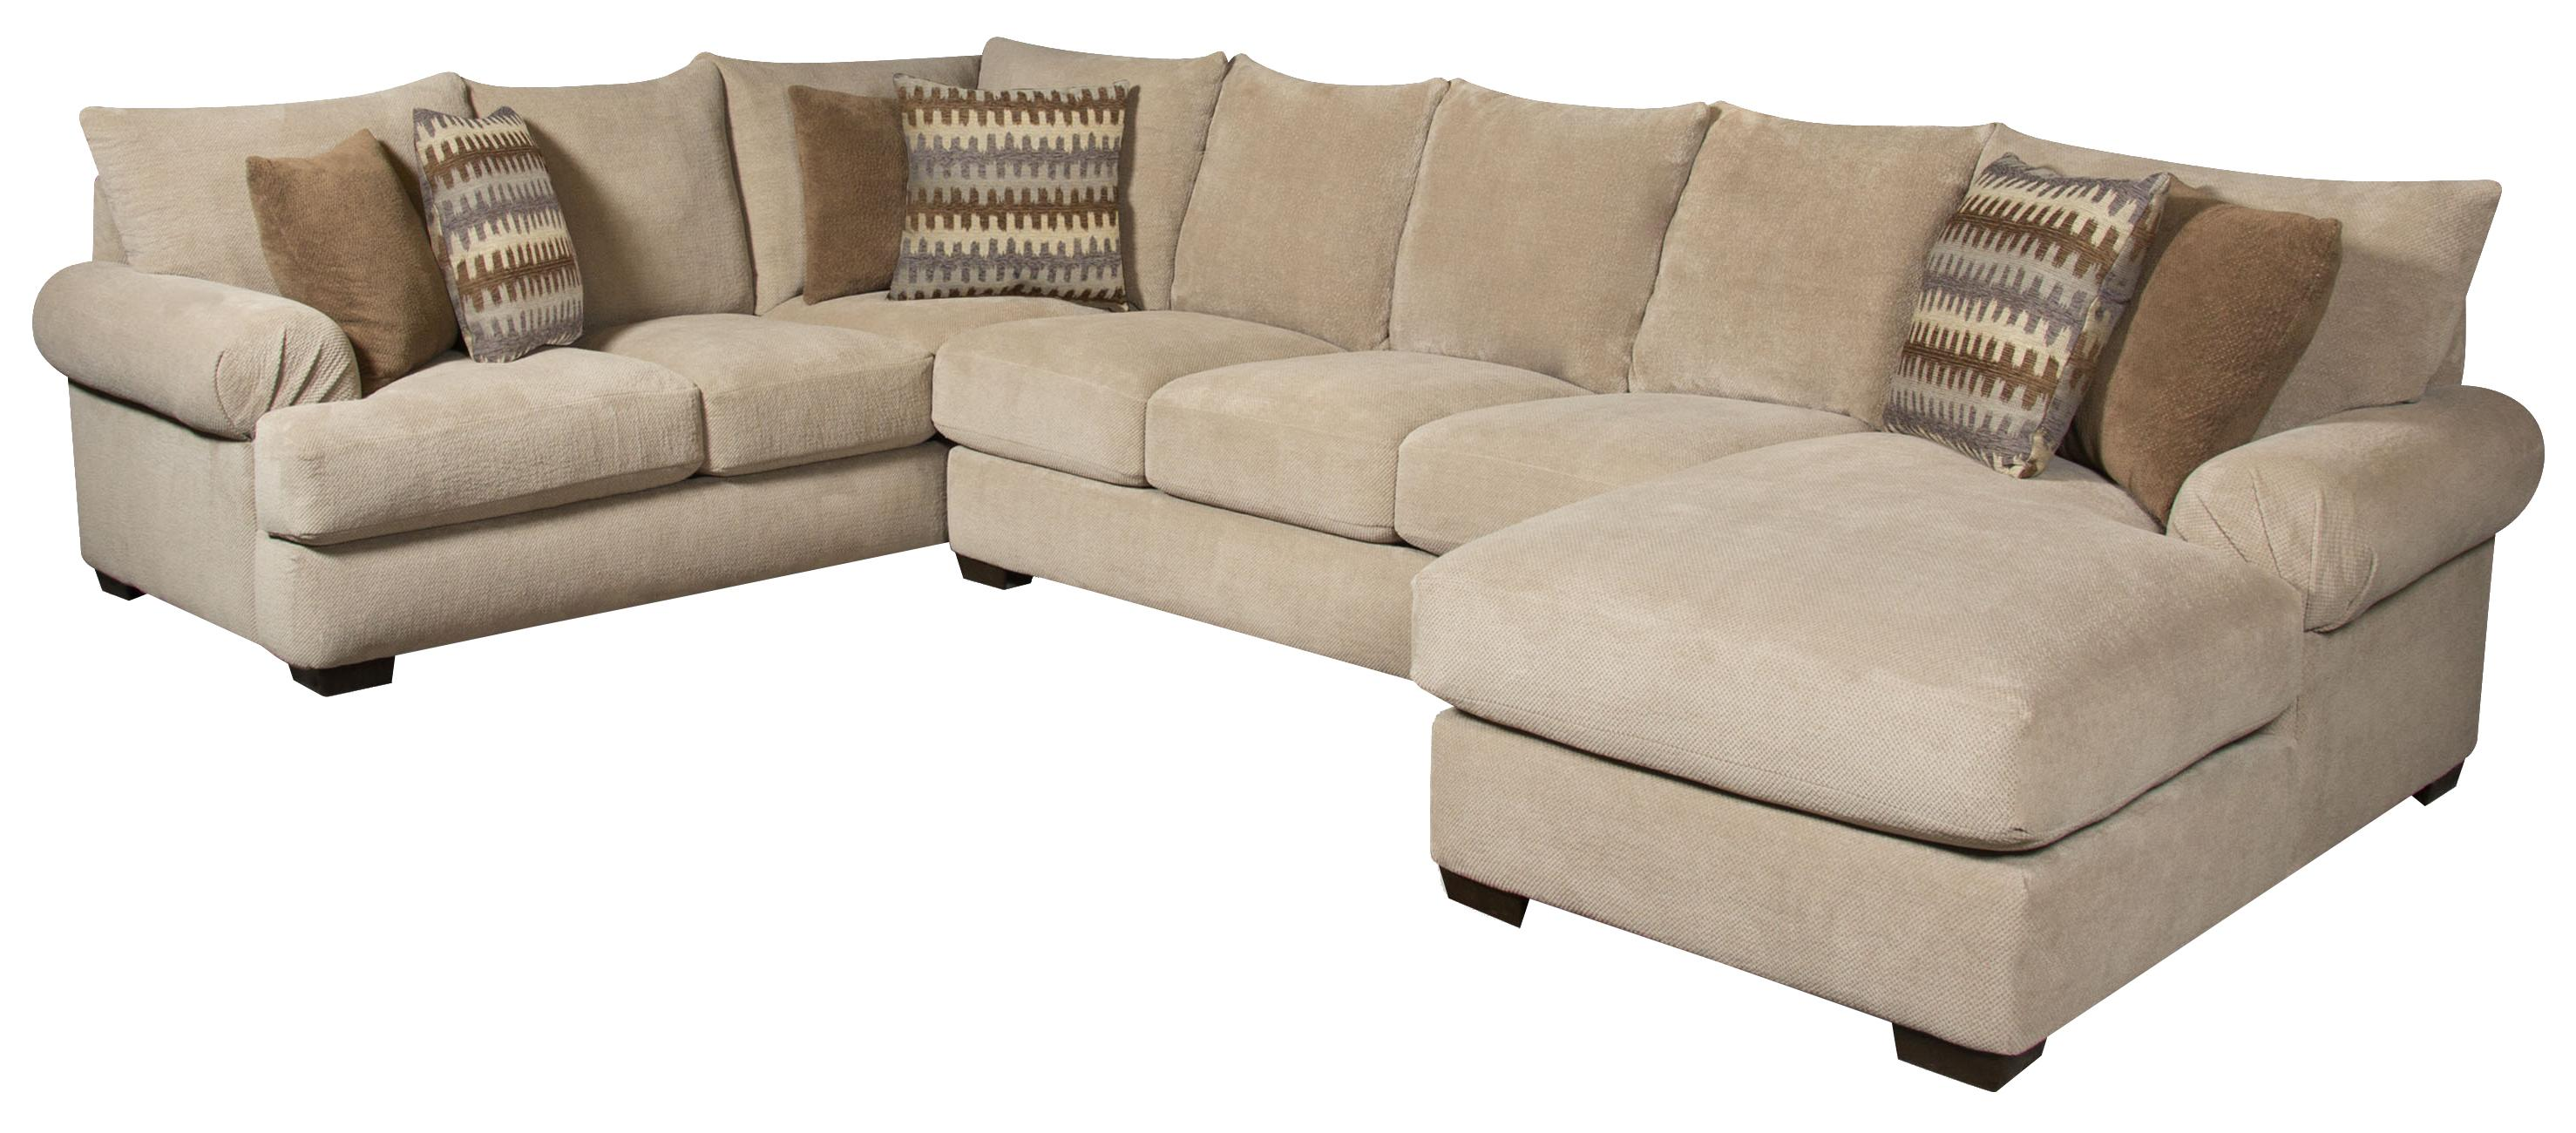 Well known Corinthian 61A0 Sectional Sofa with Right Side Chaise | Furniture  EN58